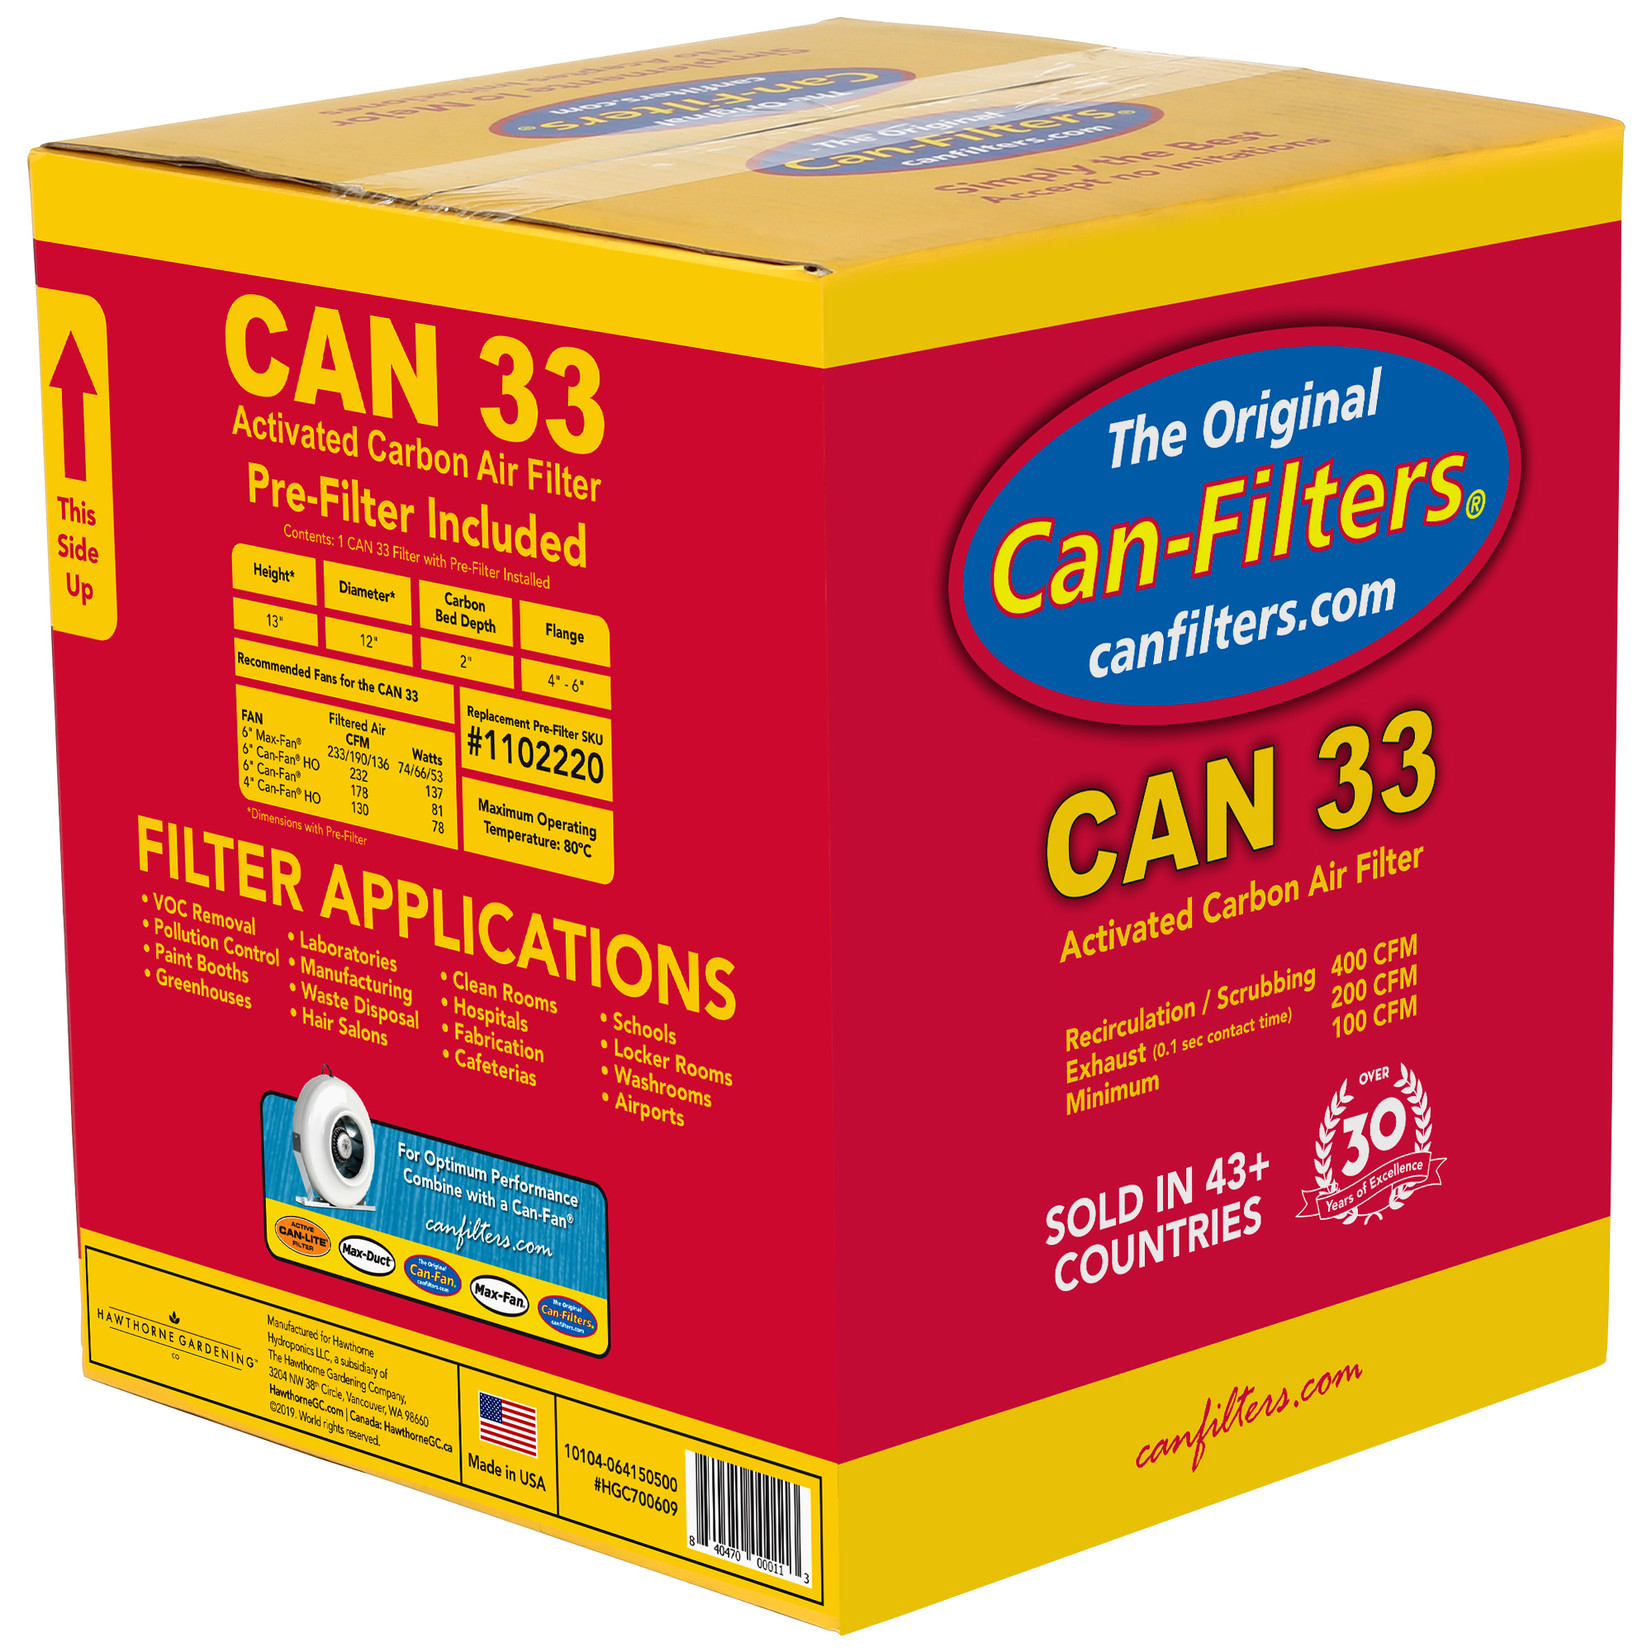 Can Filters CAN-FILTERS ACTIVATED CARBON FILTER